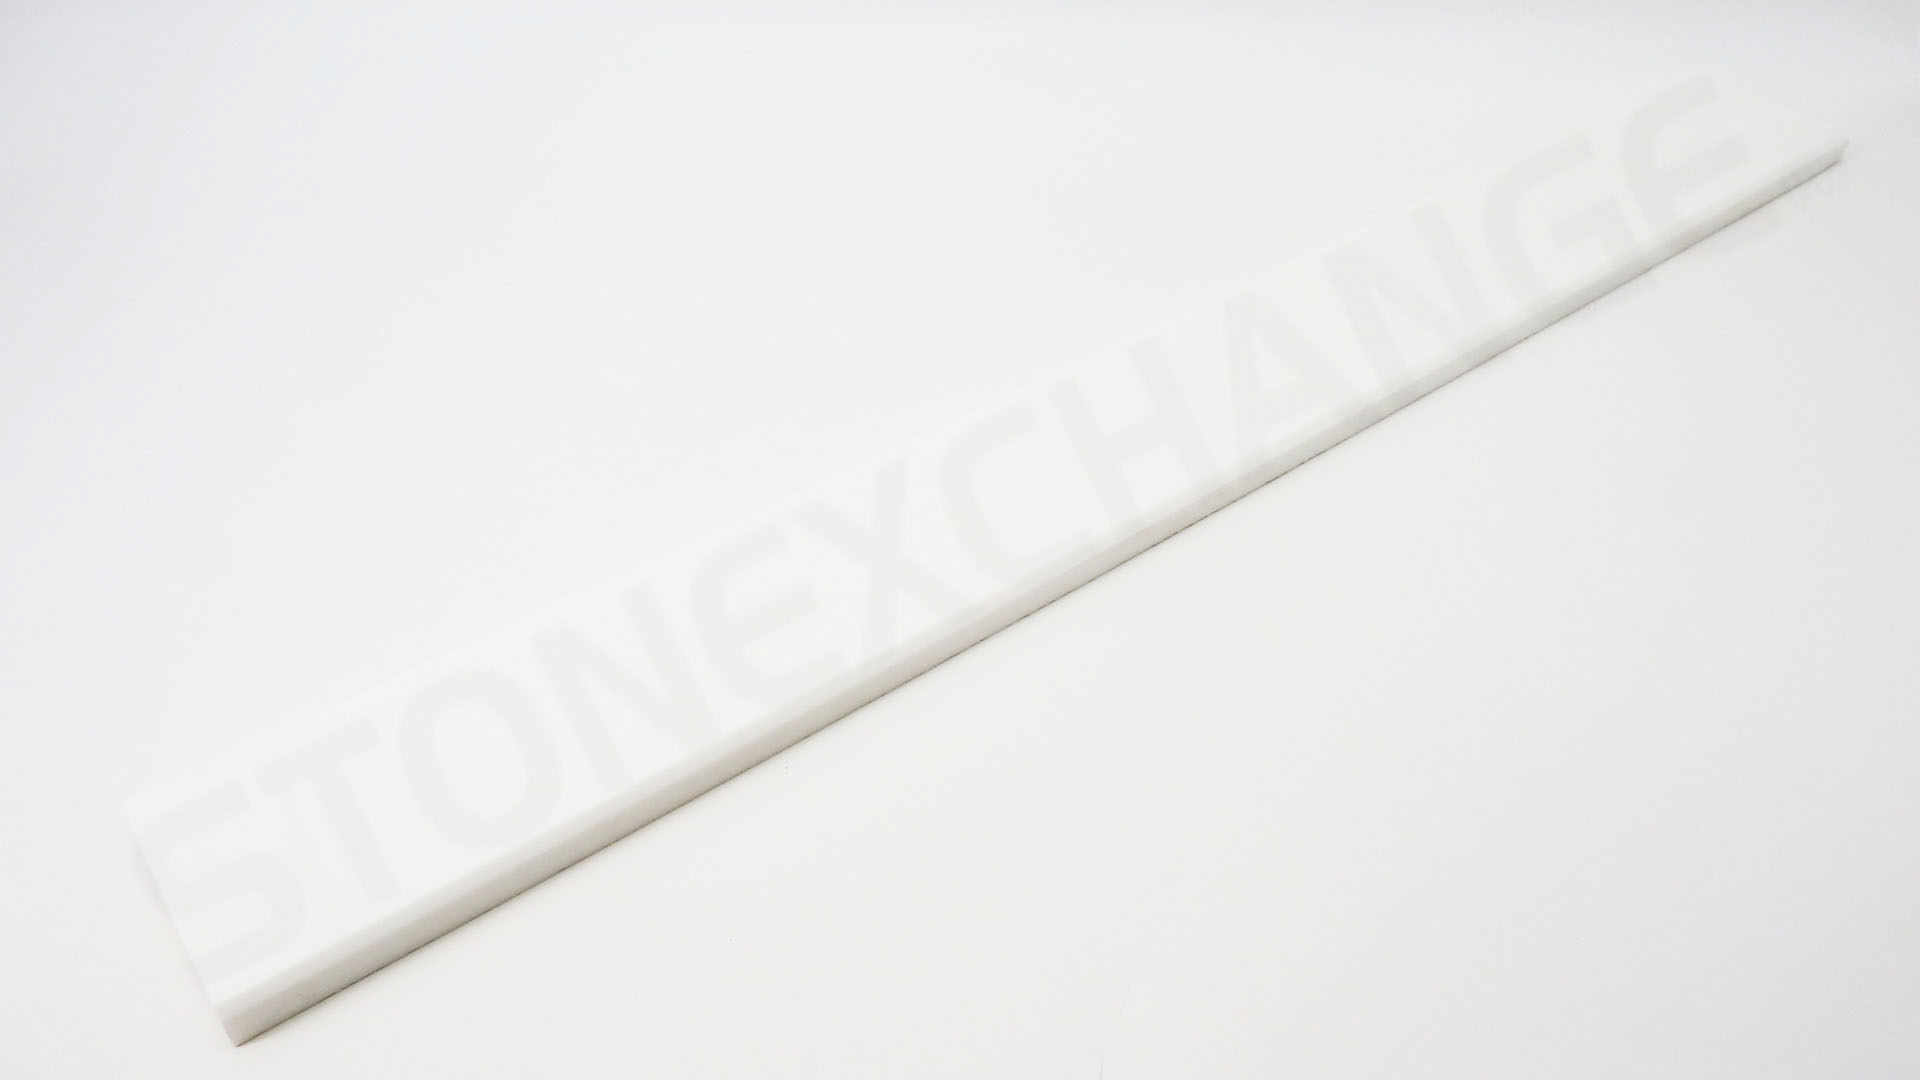 Pure White Engineered Stone 4x36 Standard Double Bevel Threshold